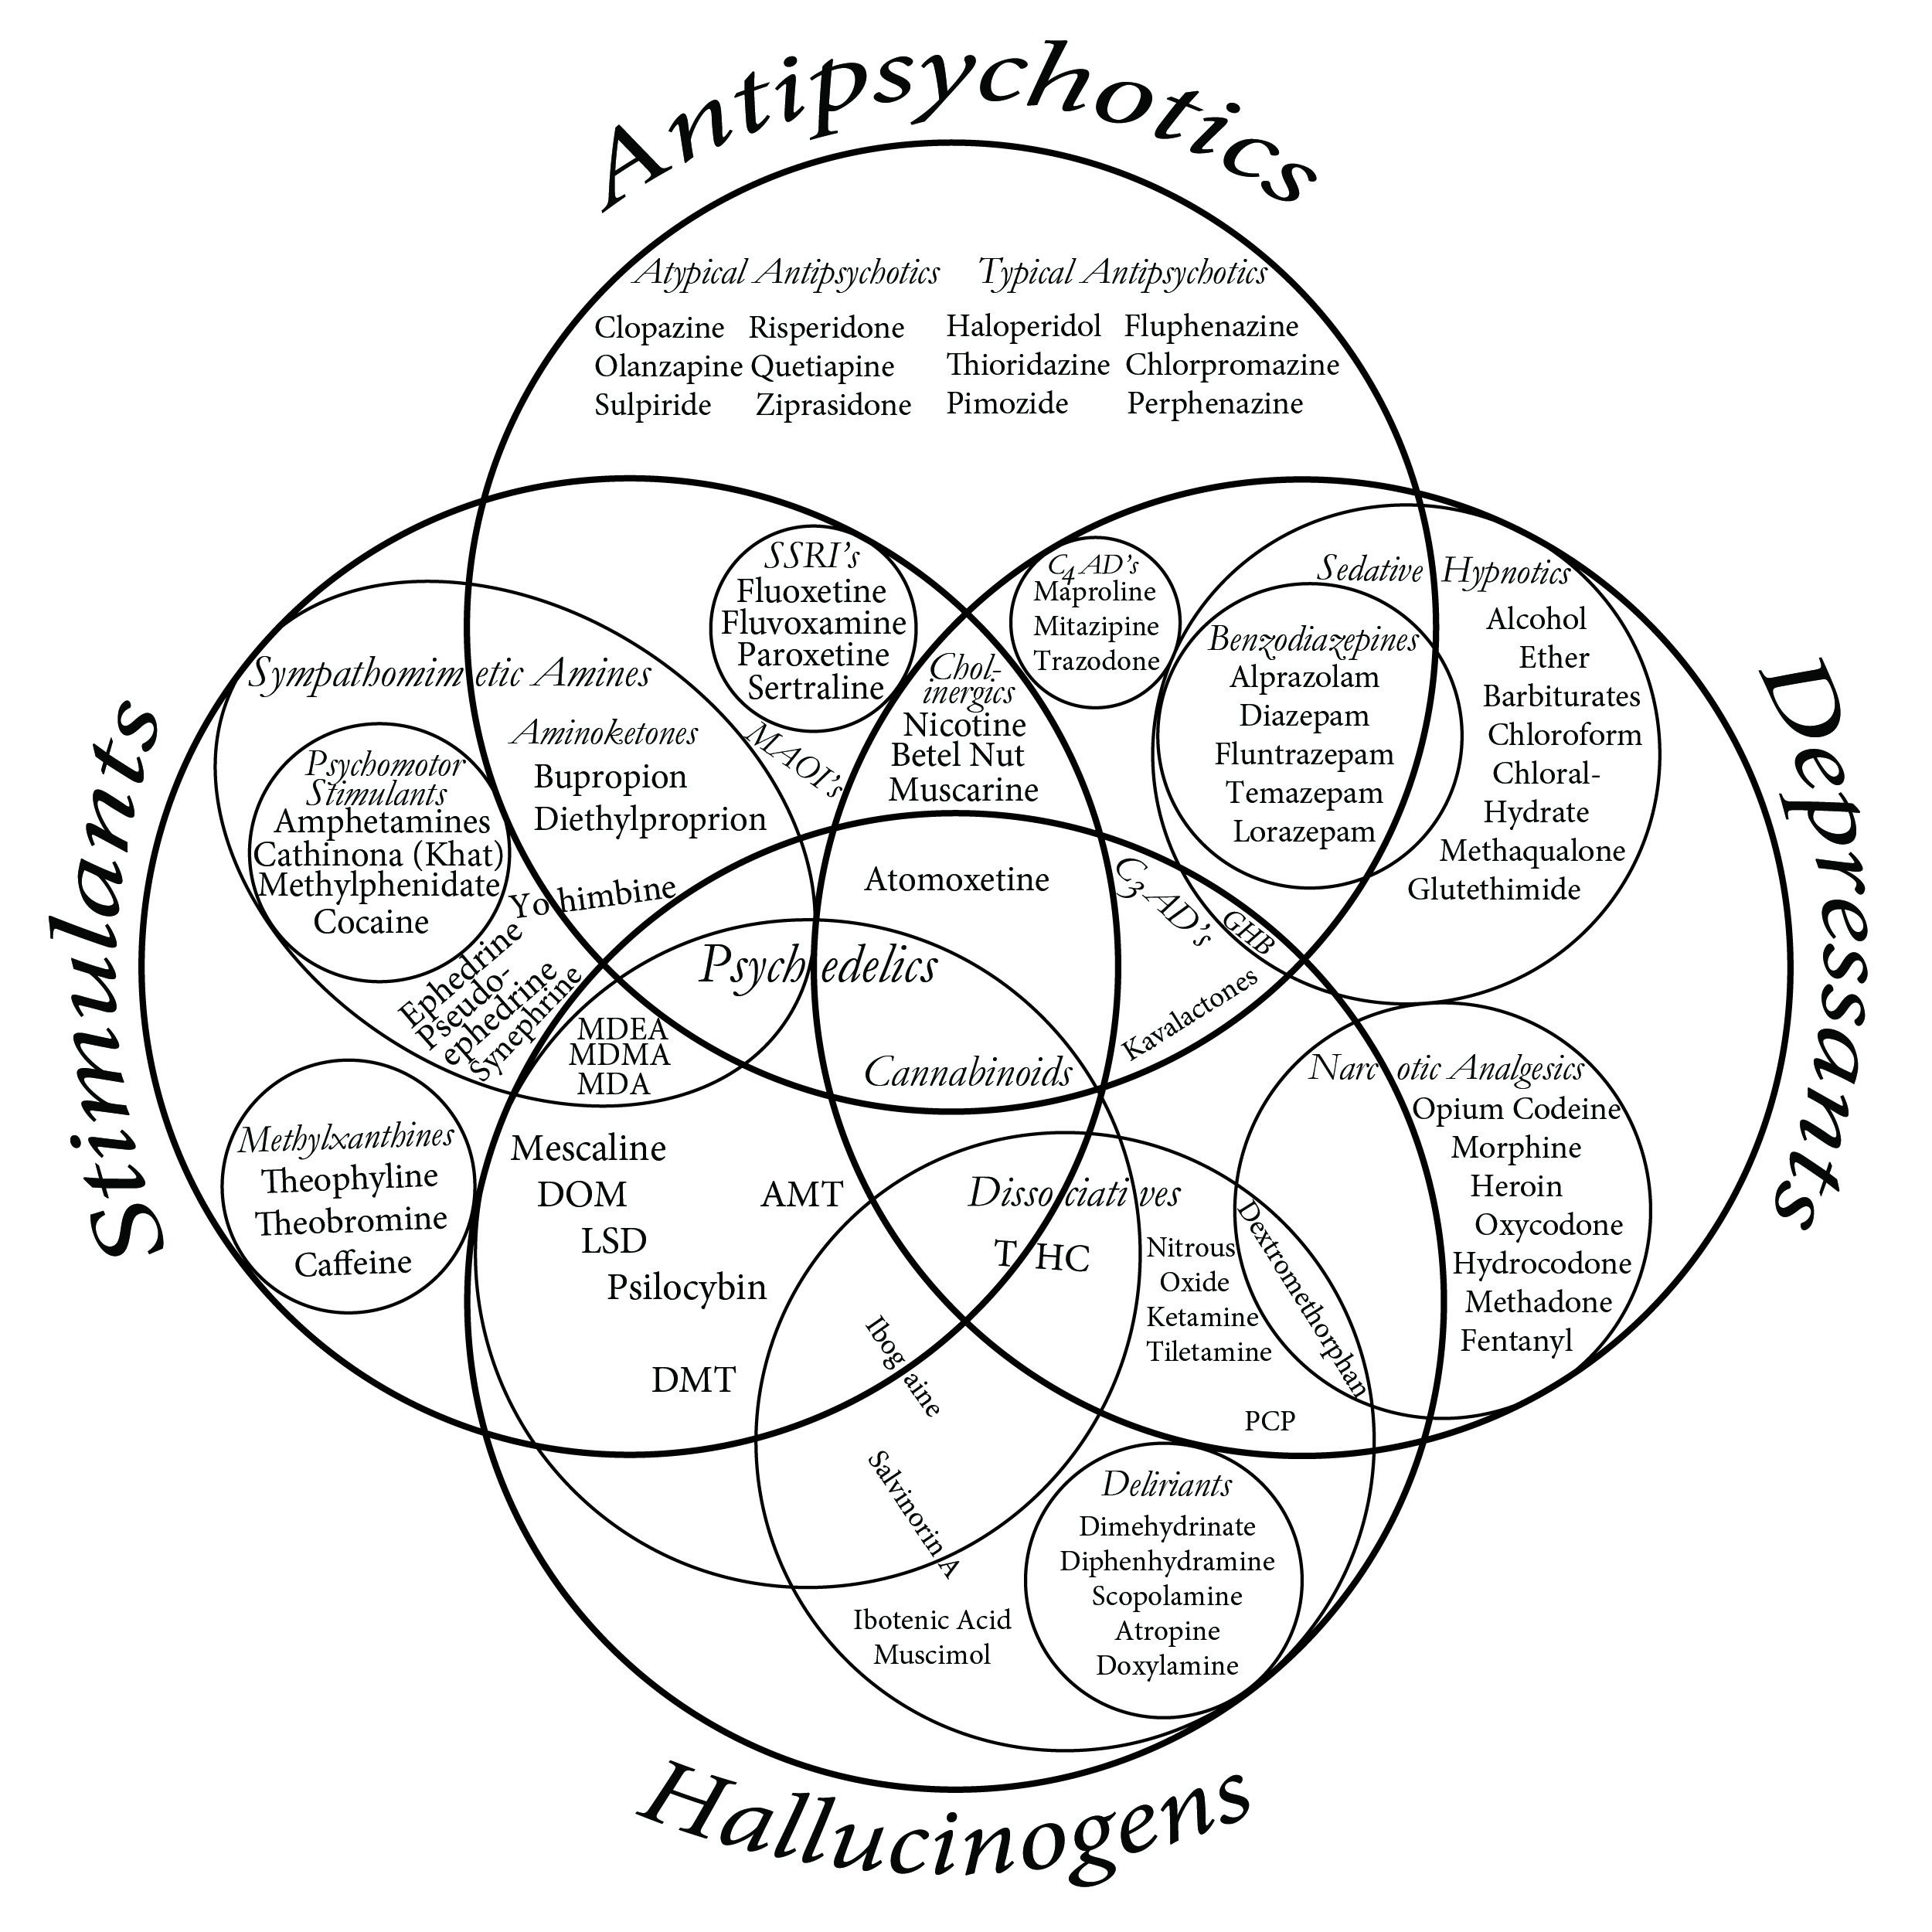 6 Way Venn Diagram Generator: Drug Venn Diagram.jpg - Wikimedia Commons,Chart